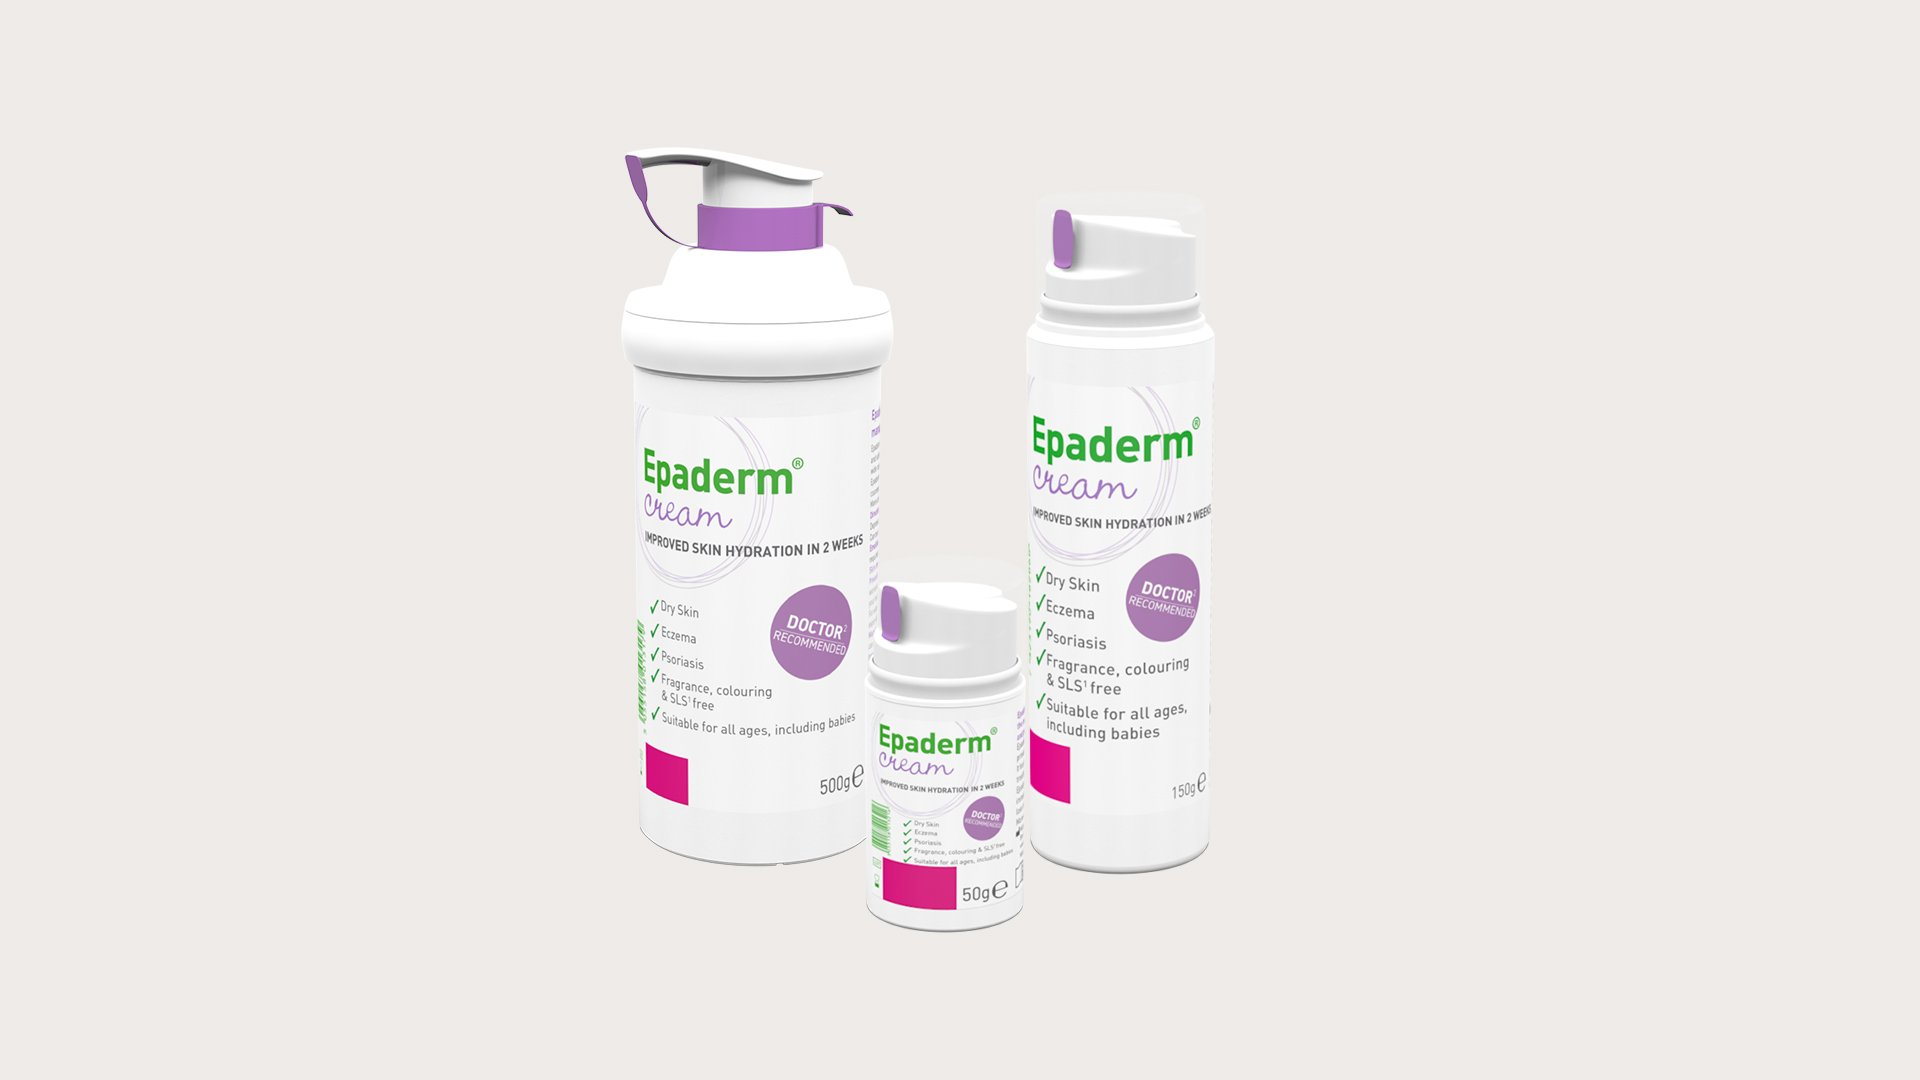 Epaderm Cream Emollient And Skin Cleanser For Dry Skin Conditions Molnlycke